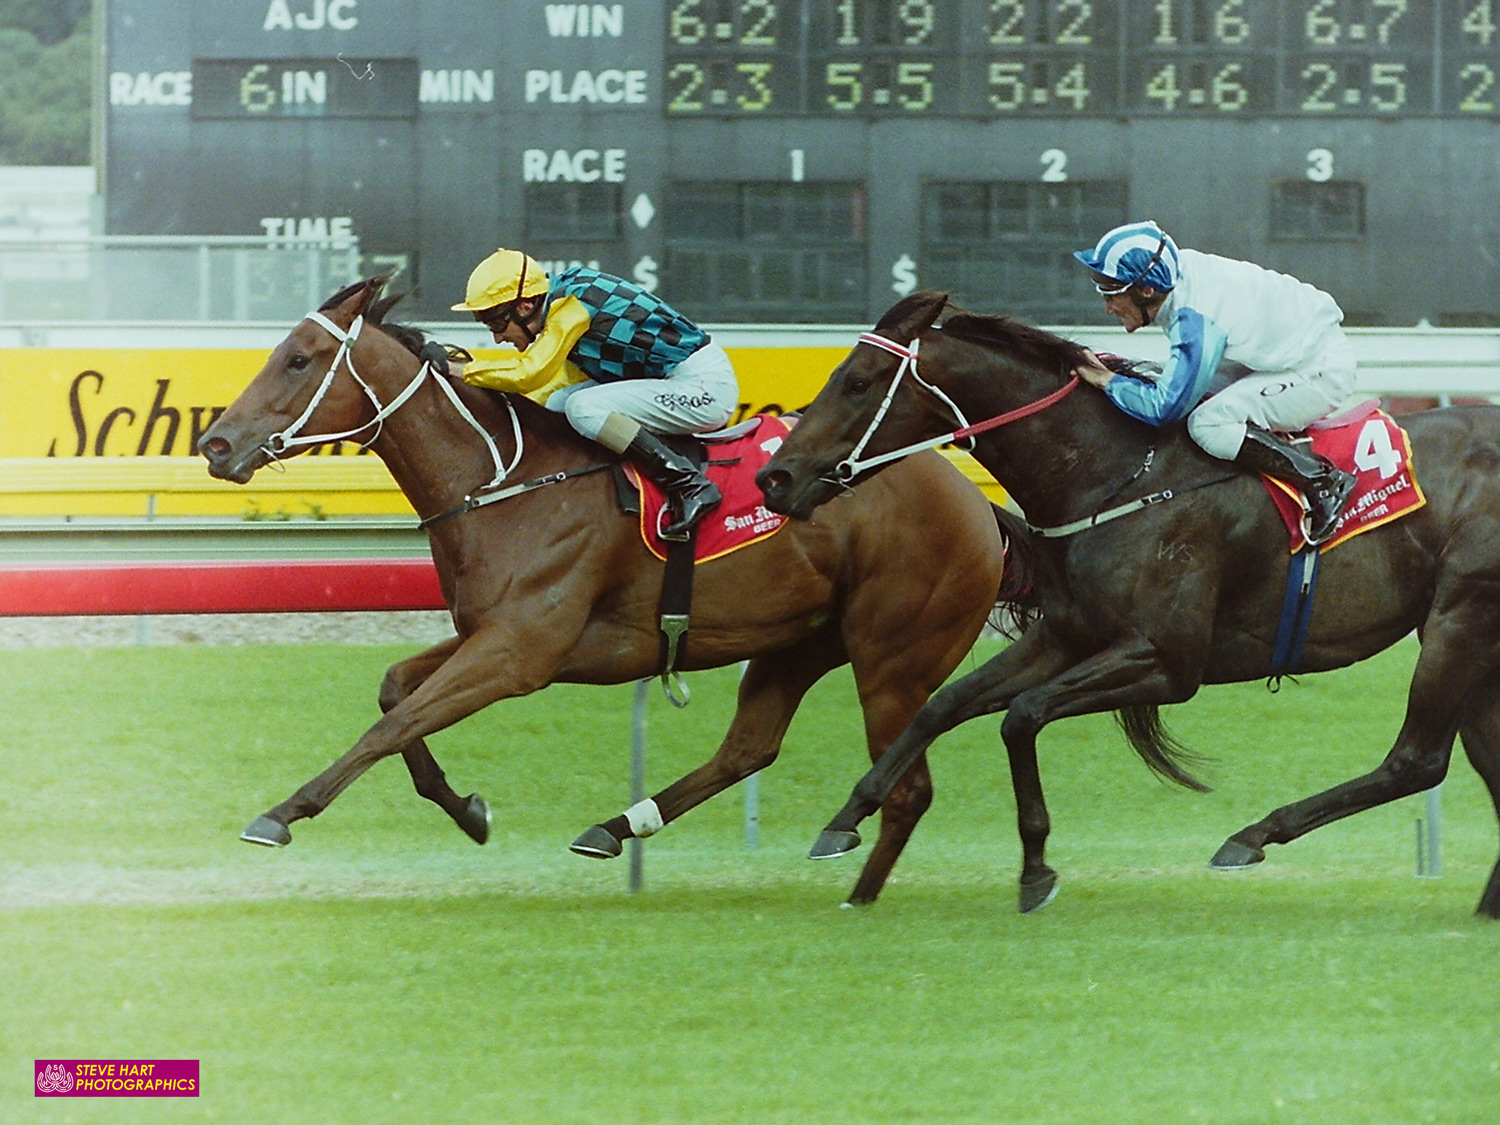 Image courtesy Steve Hart Photographics - Mistegic comes off brilliant Melbourne form to win The Galaxy 2002 from Century Kid.